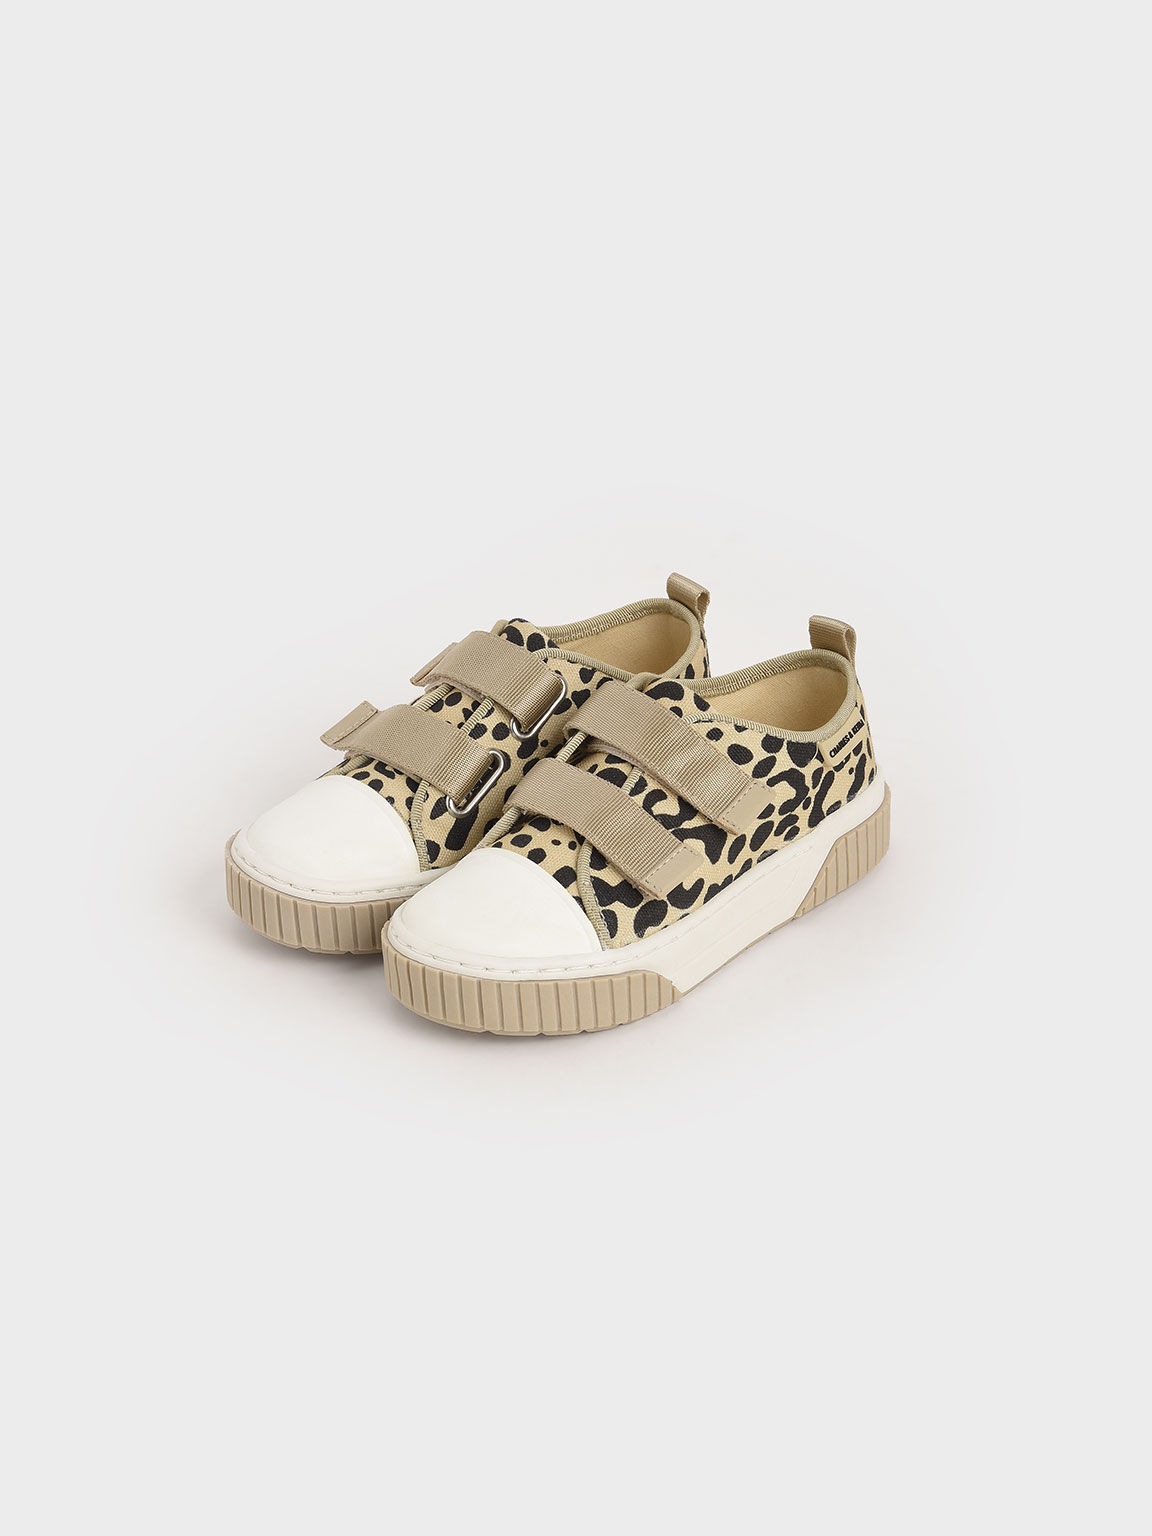 Purpose Collection 2021: Girls' Organic Cotton Sneakers, Beige, hi-res